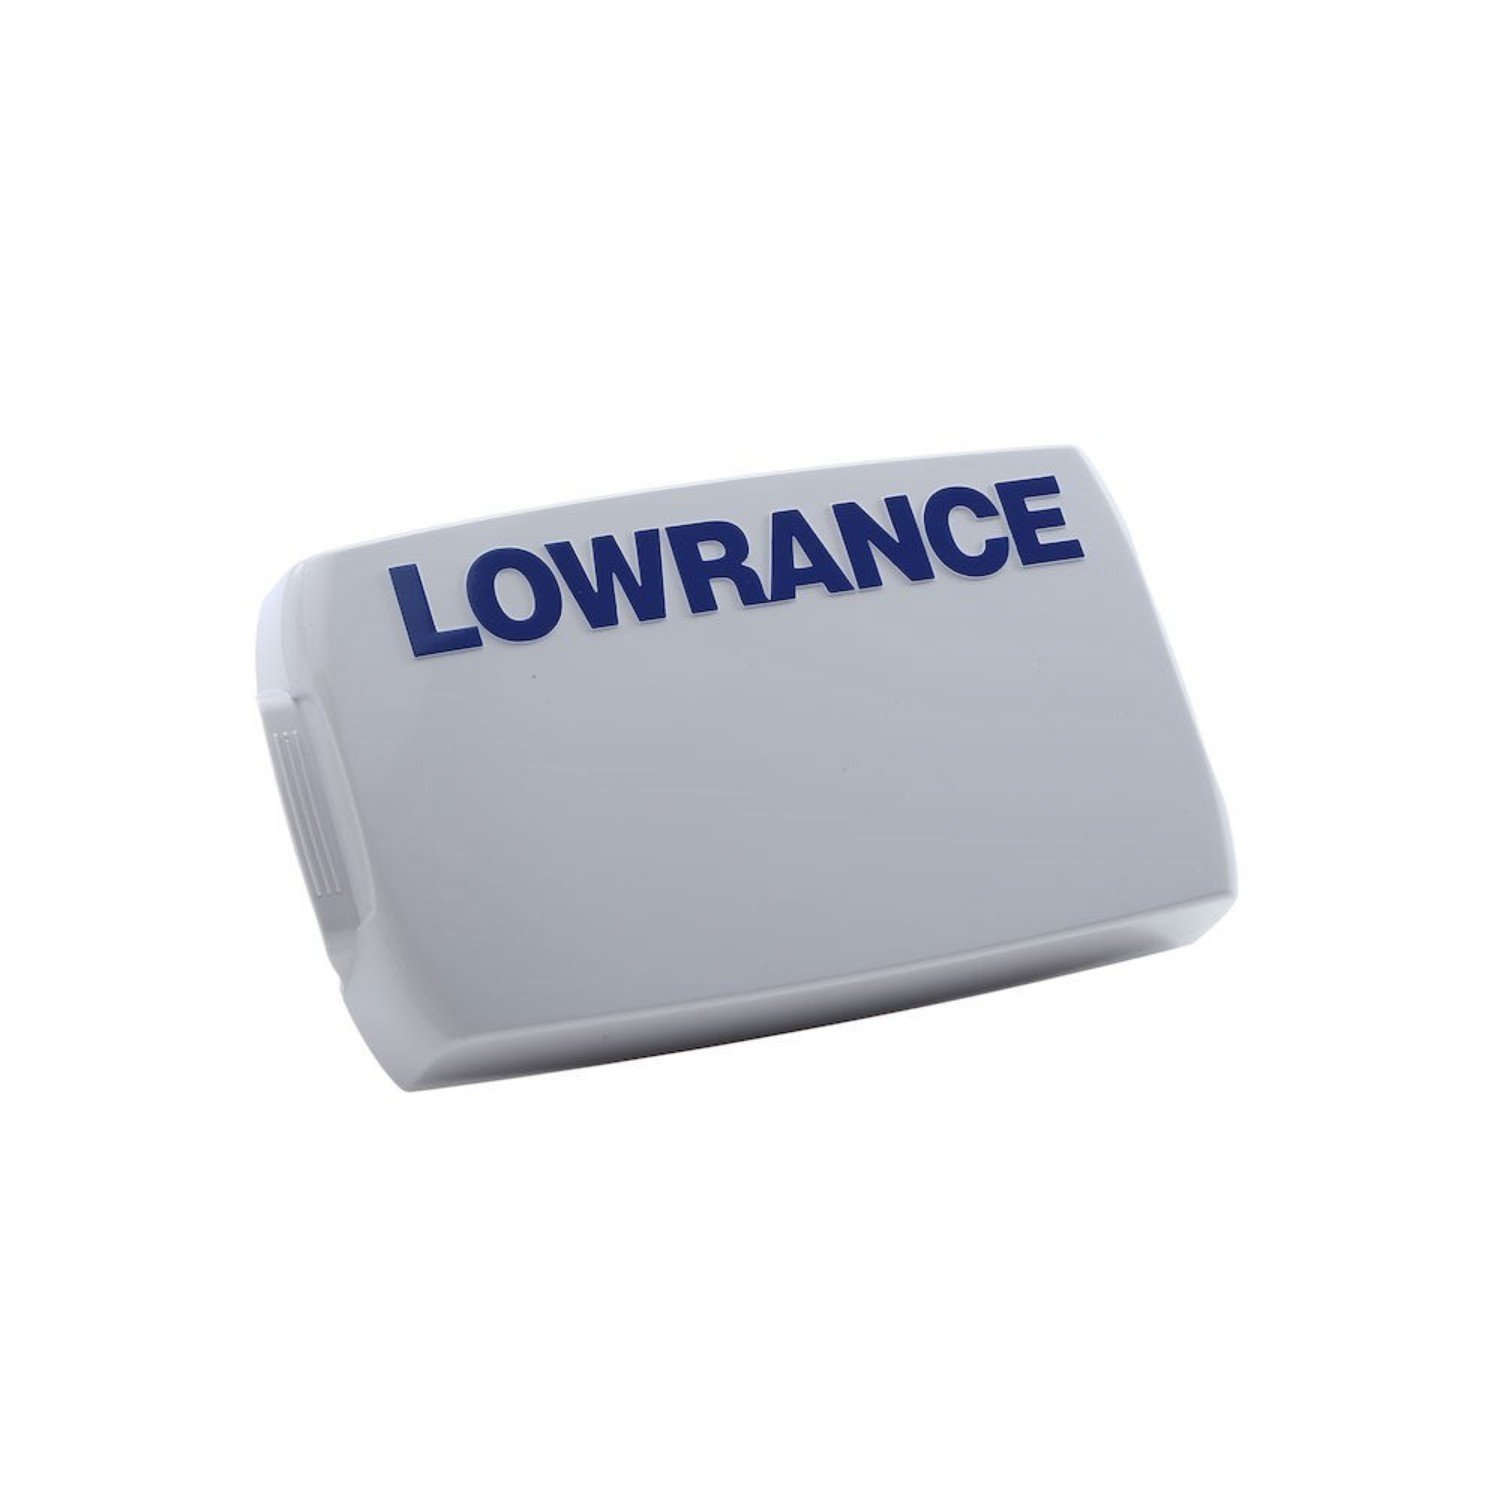 Lowrance 000-14173-00 4'' Hook-2 Sun Cover, White